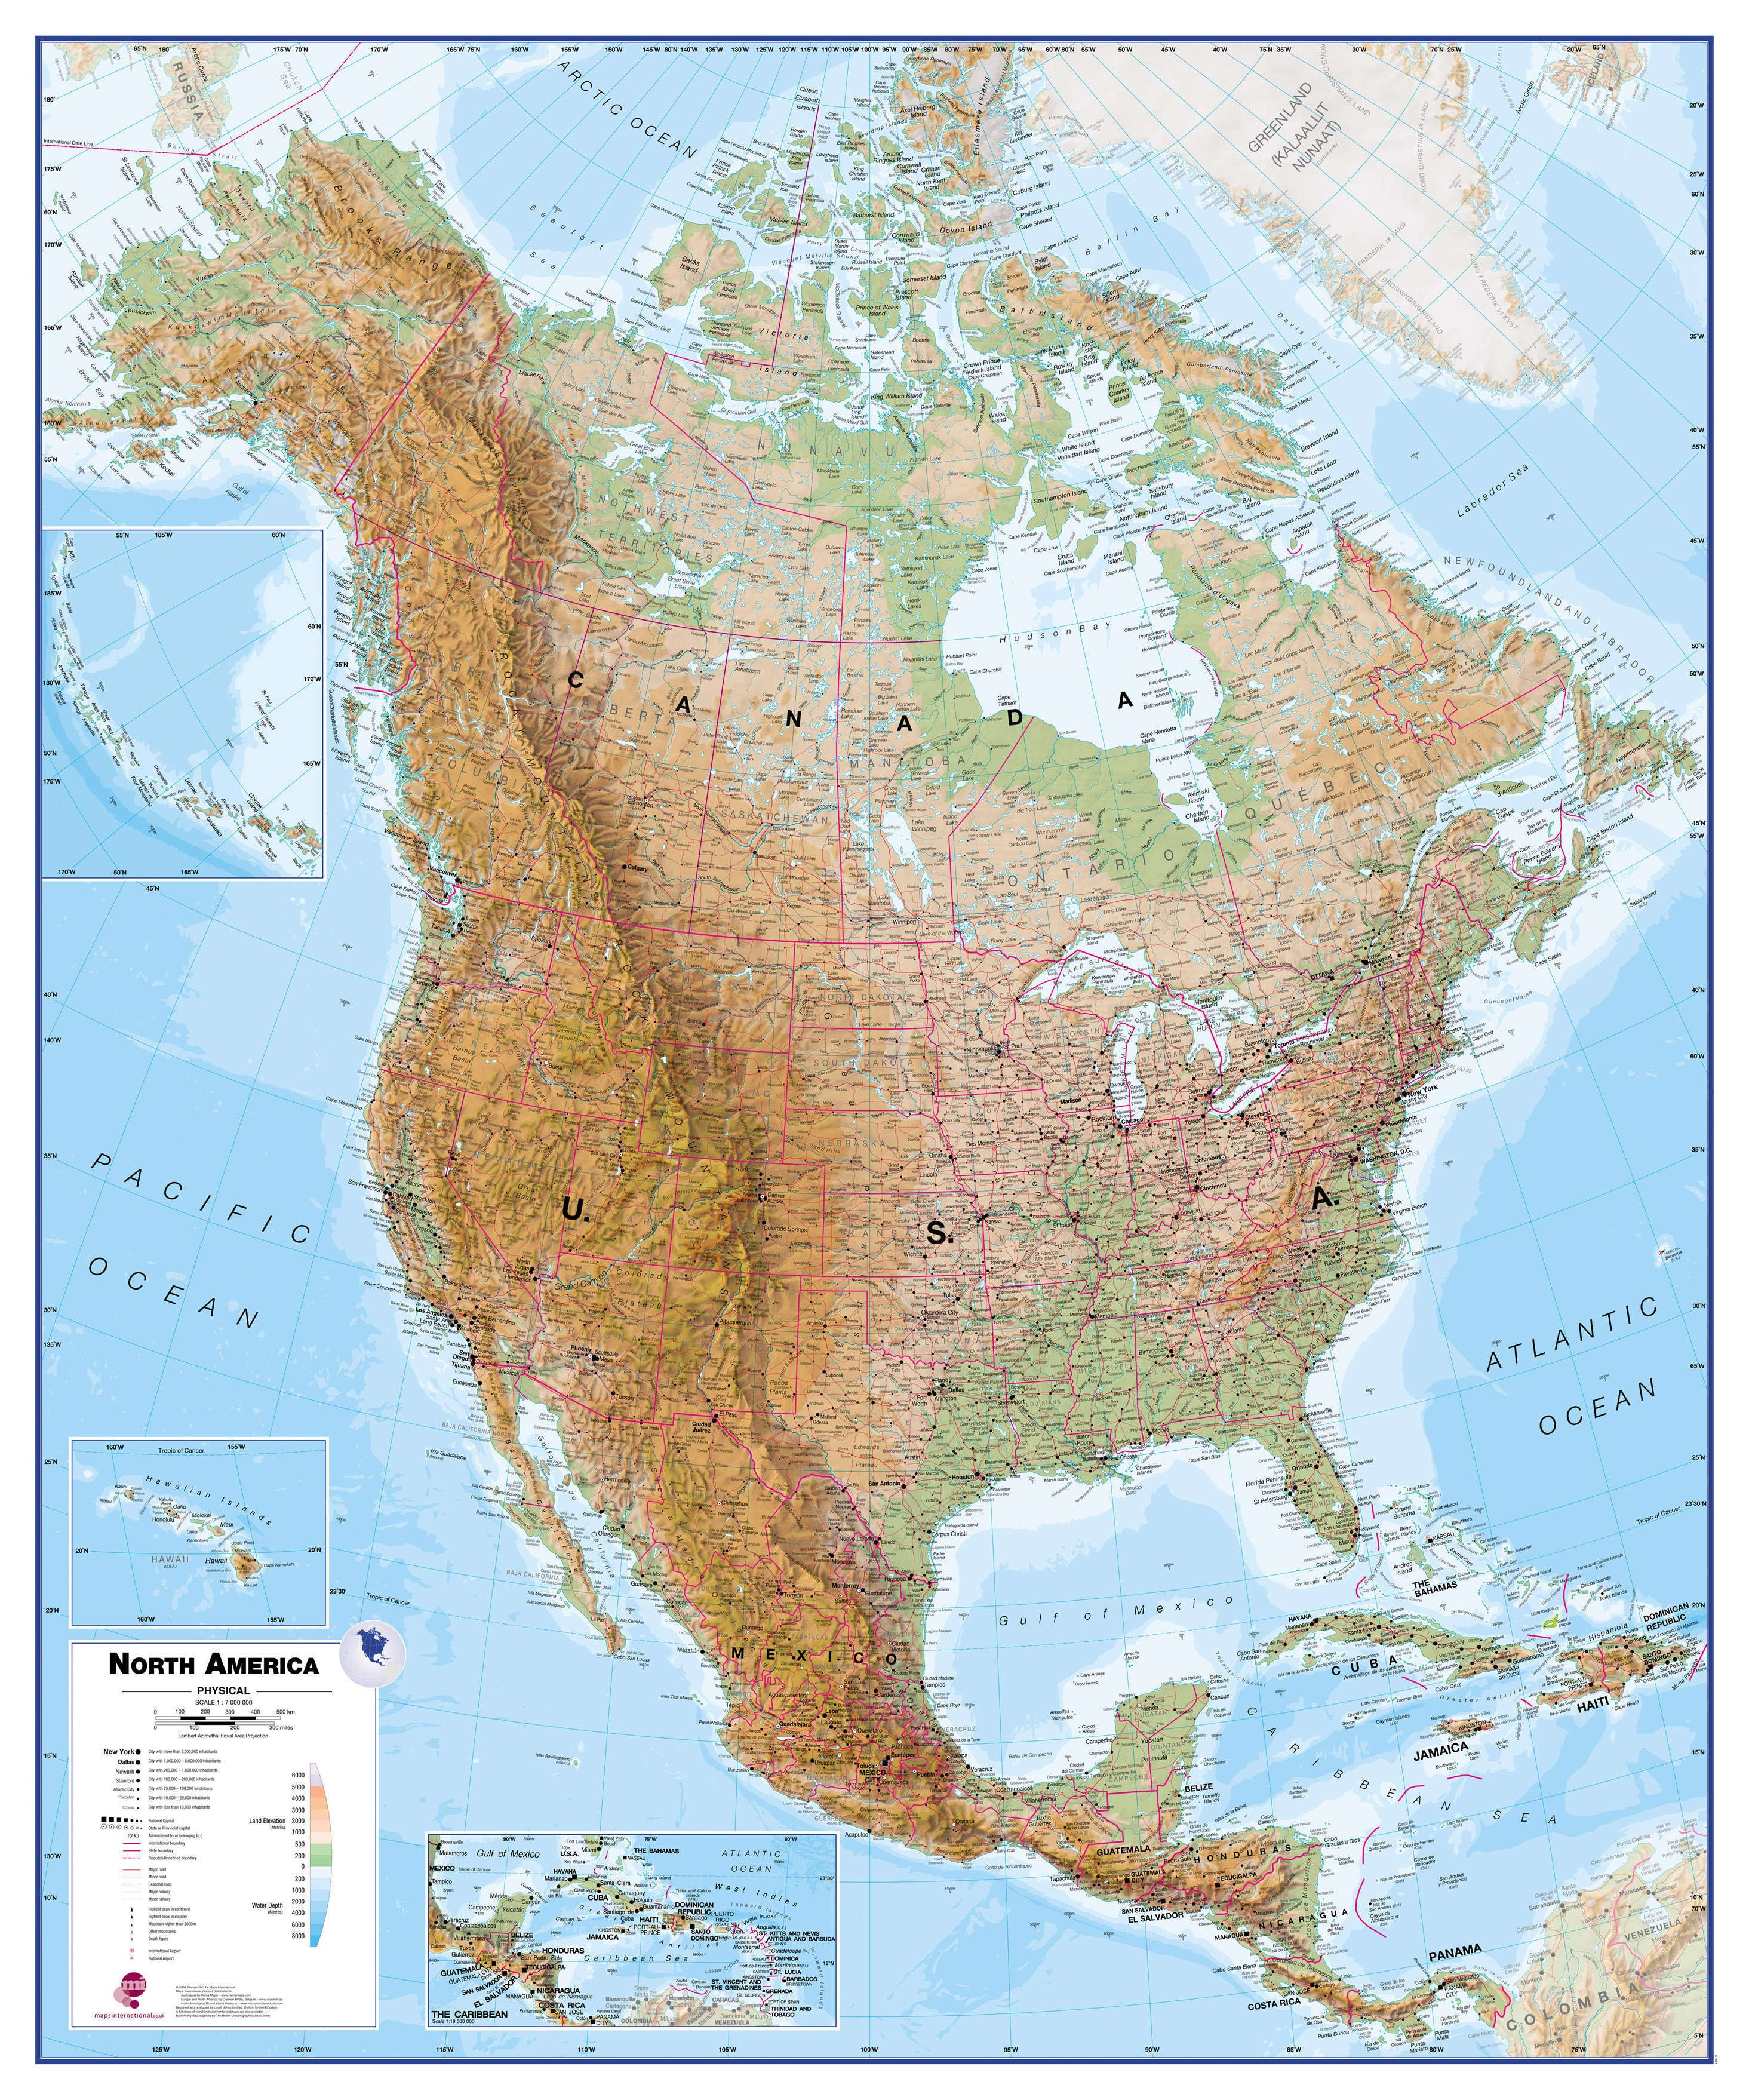 Physical North America Wall Map on map south america, map of alaska, map of the usa states, map of asia, map of the dominican republic, map of the wisconsin, map of the world, map of the united states, map of europe, map of the canadian shield, map of the oceania, map of china, map of canada, map of the russia, map of the earth, map of the antarctica, map of the india, map of the mexico, map of the andean region, map of the jamaica,